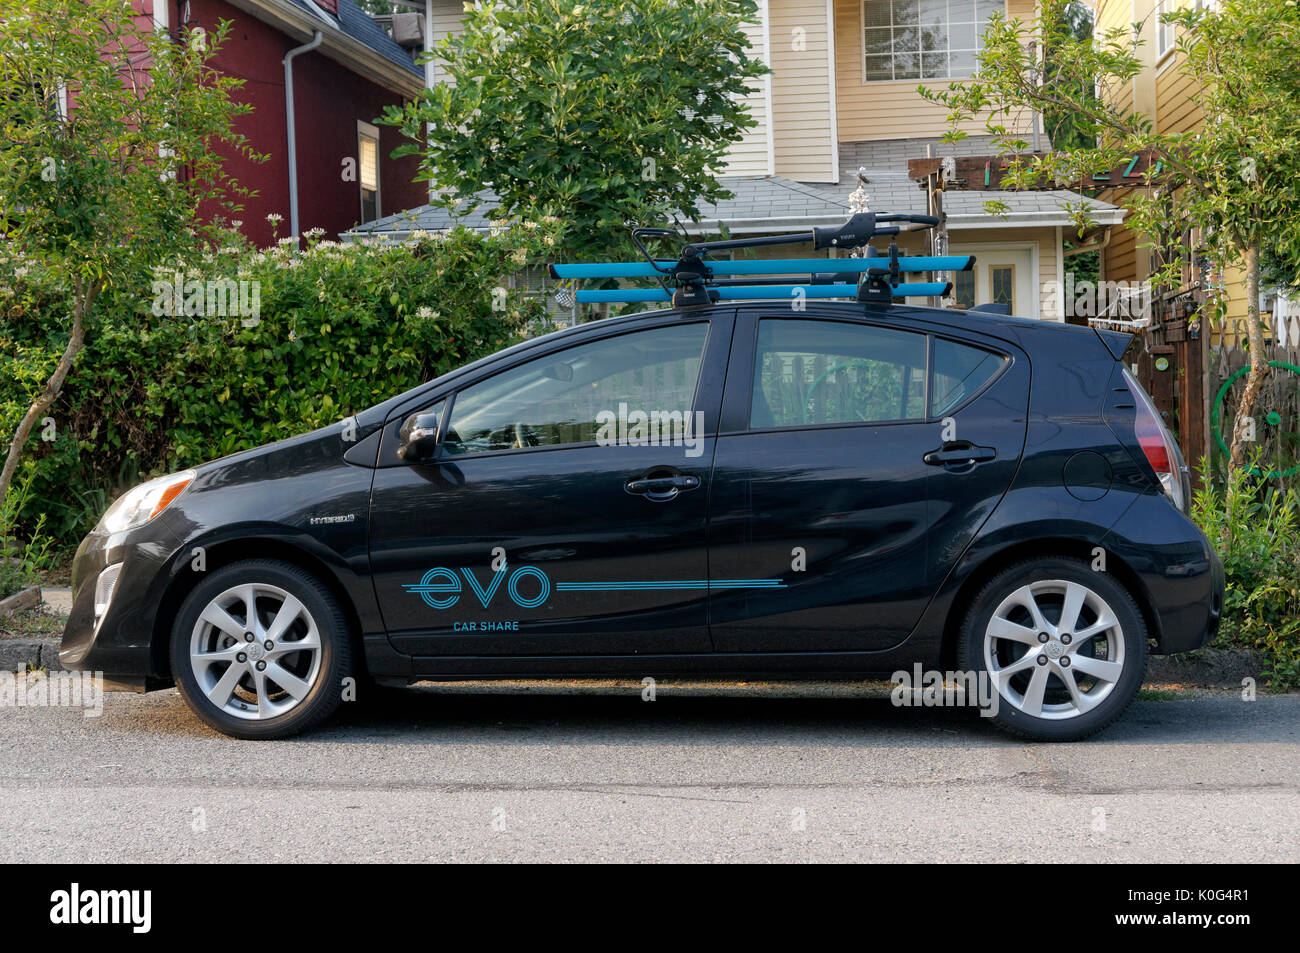 Toyota Prius c hybrid evo car share automobile parked on a residential street, Vancouver, BC. Canada - Stock Image